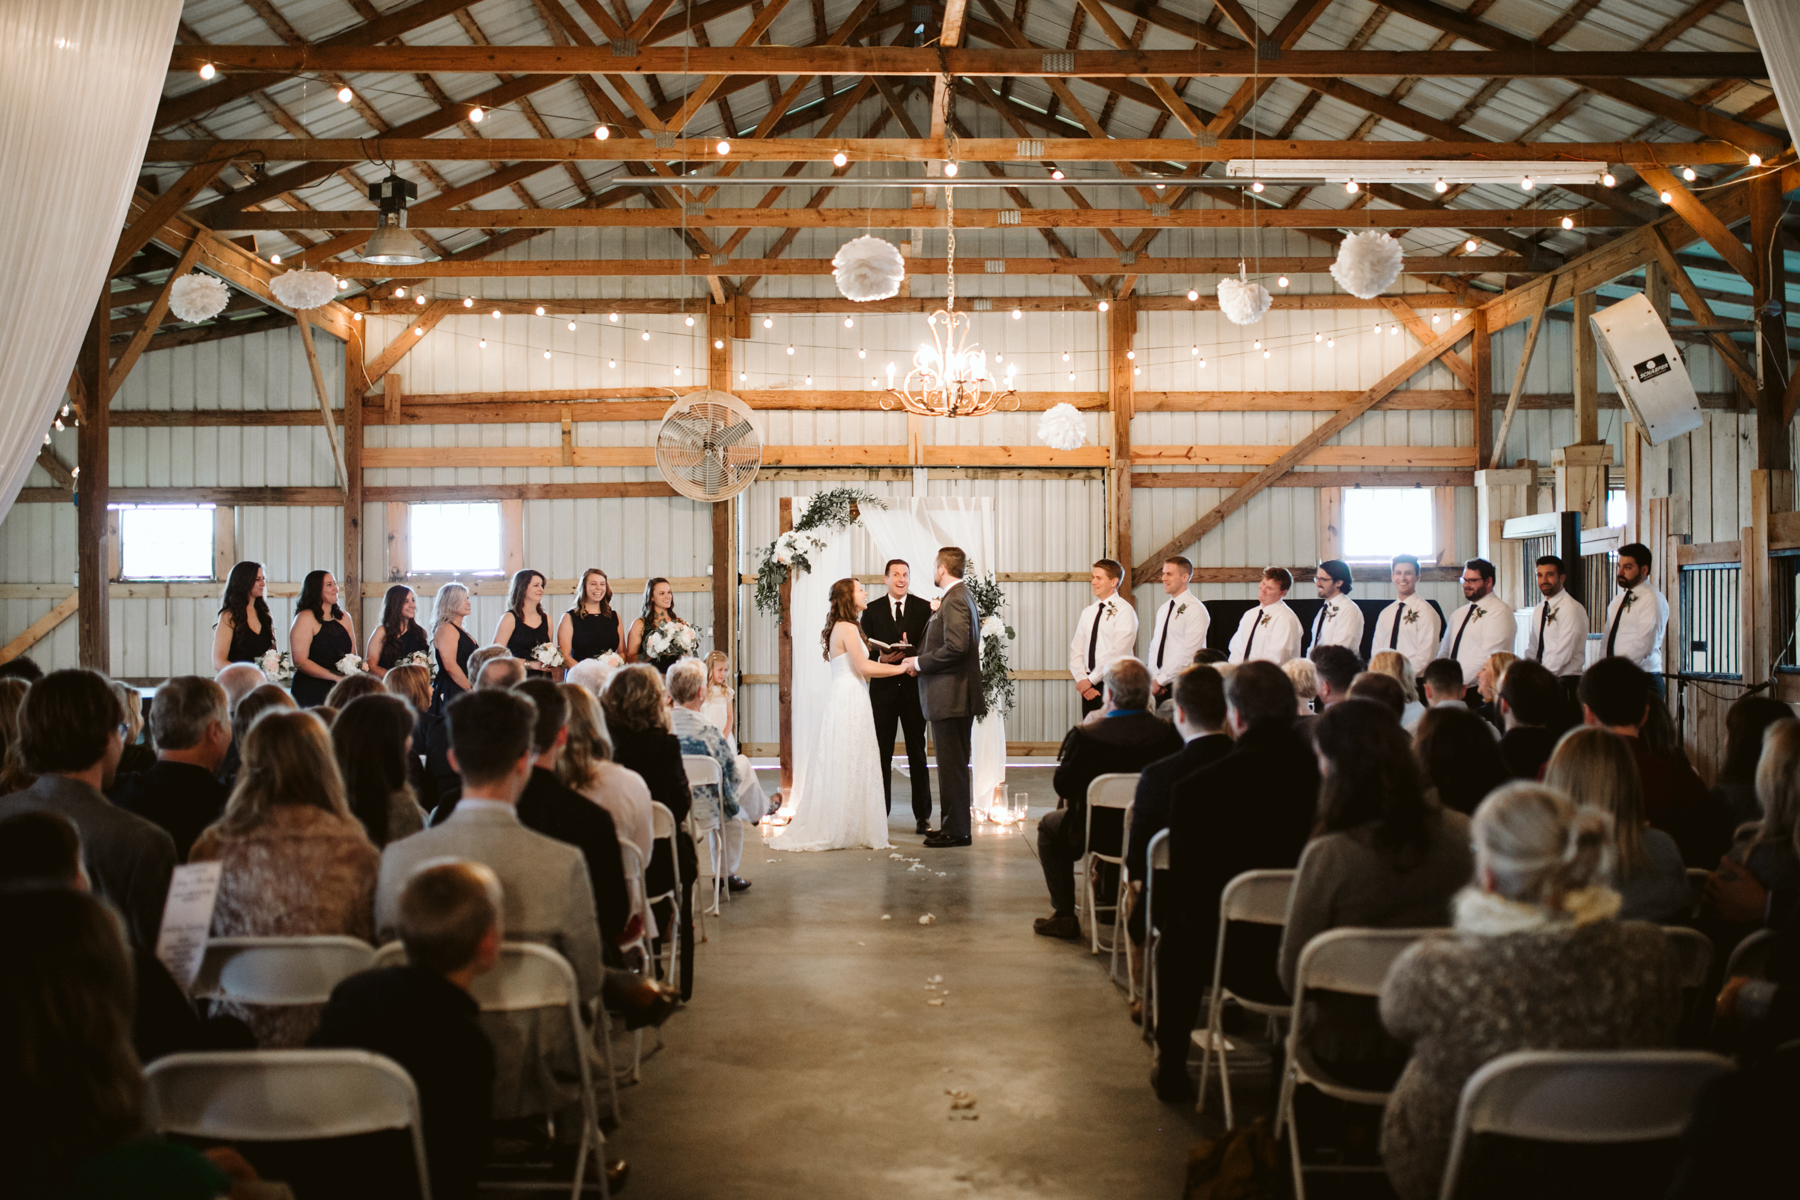 Rainy indoor ceremony, A Rustic Wedding at Barn in the Bend in Nashville, Tennessee